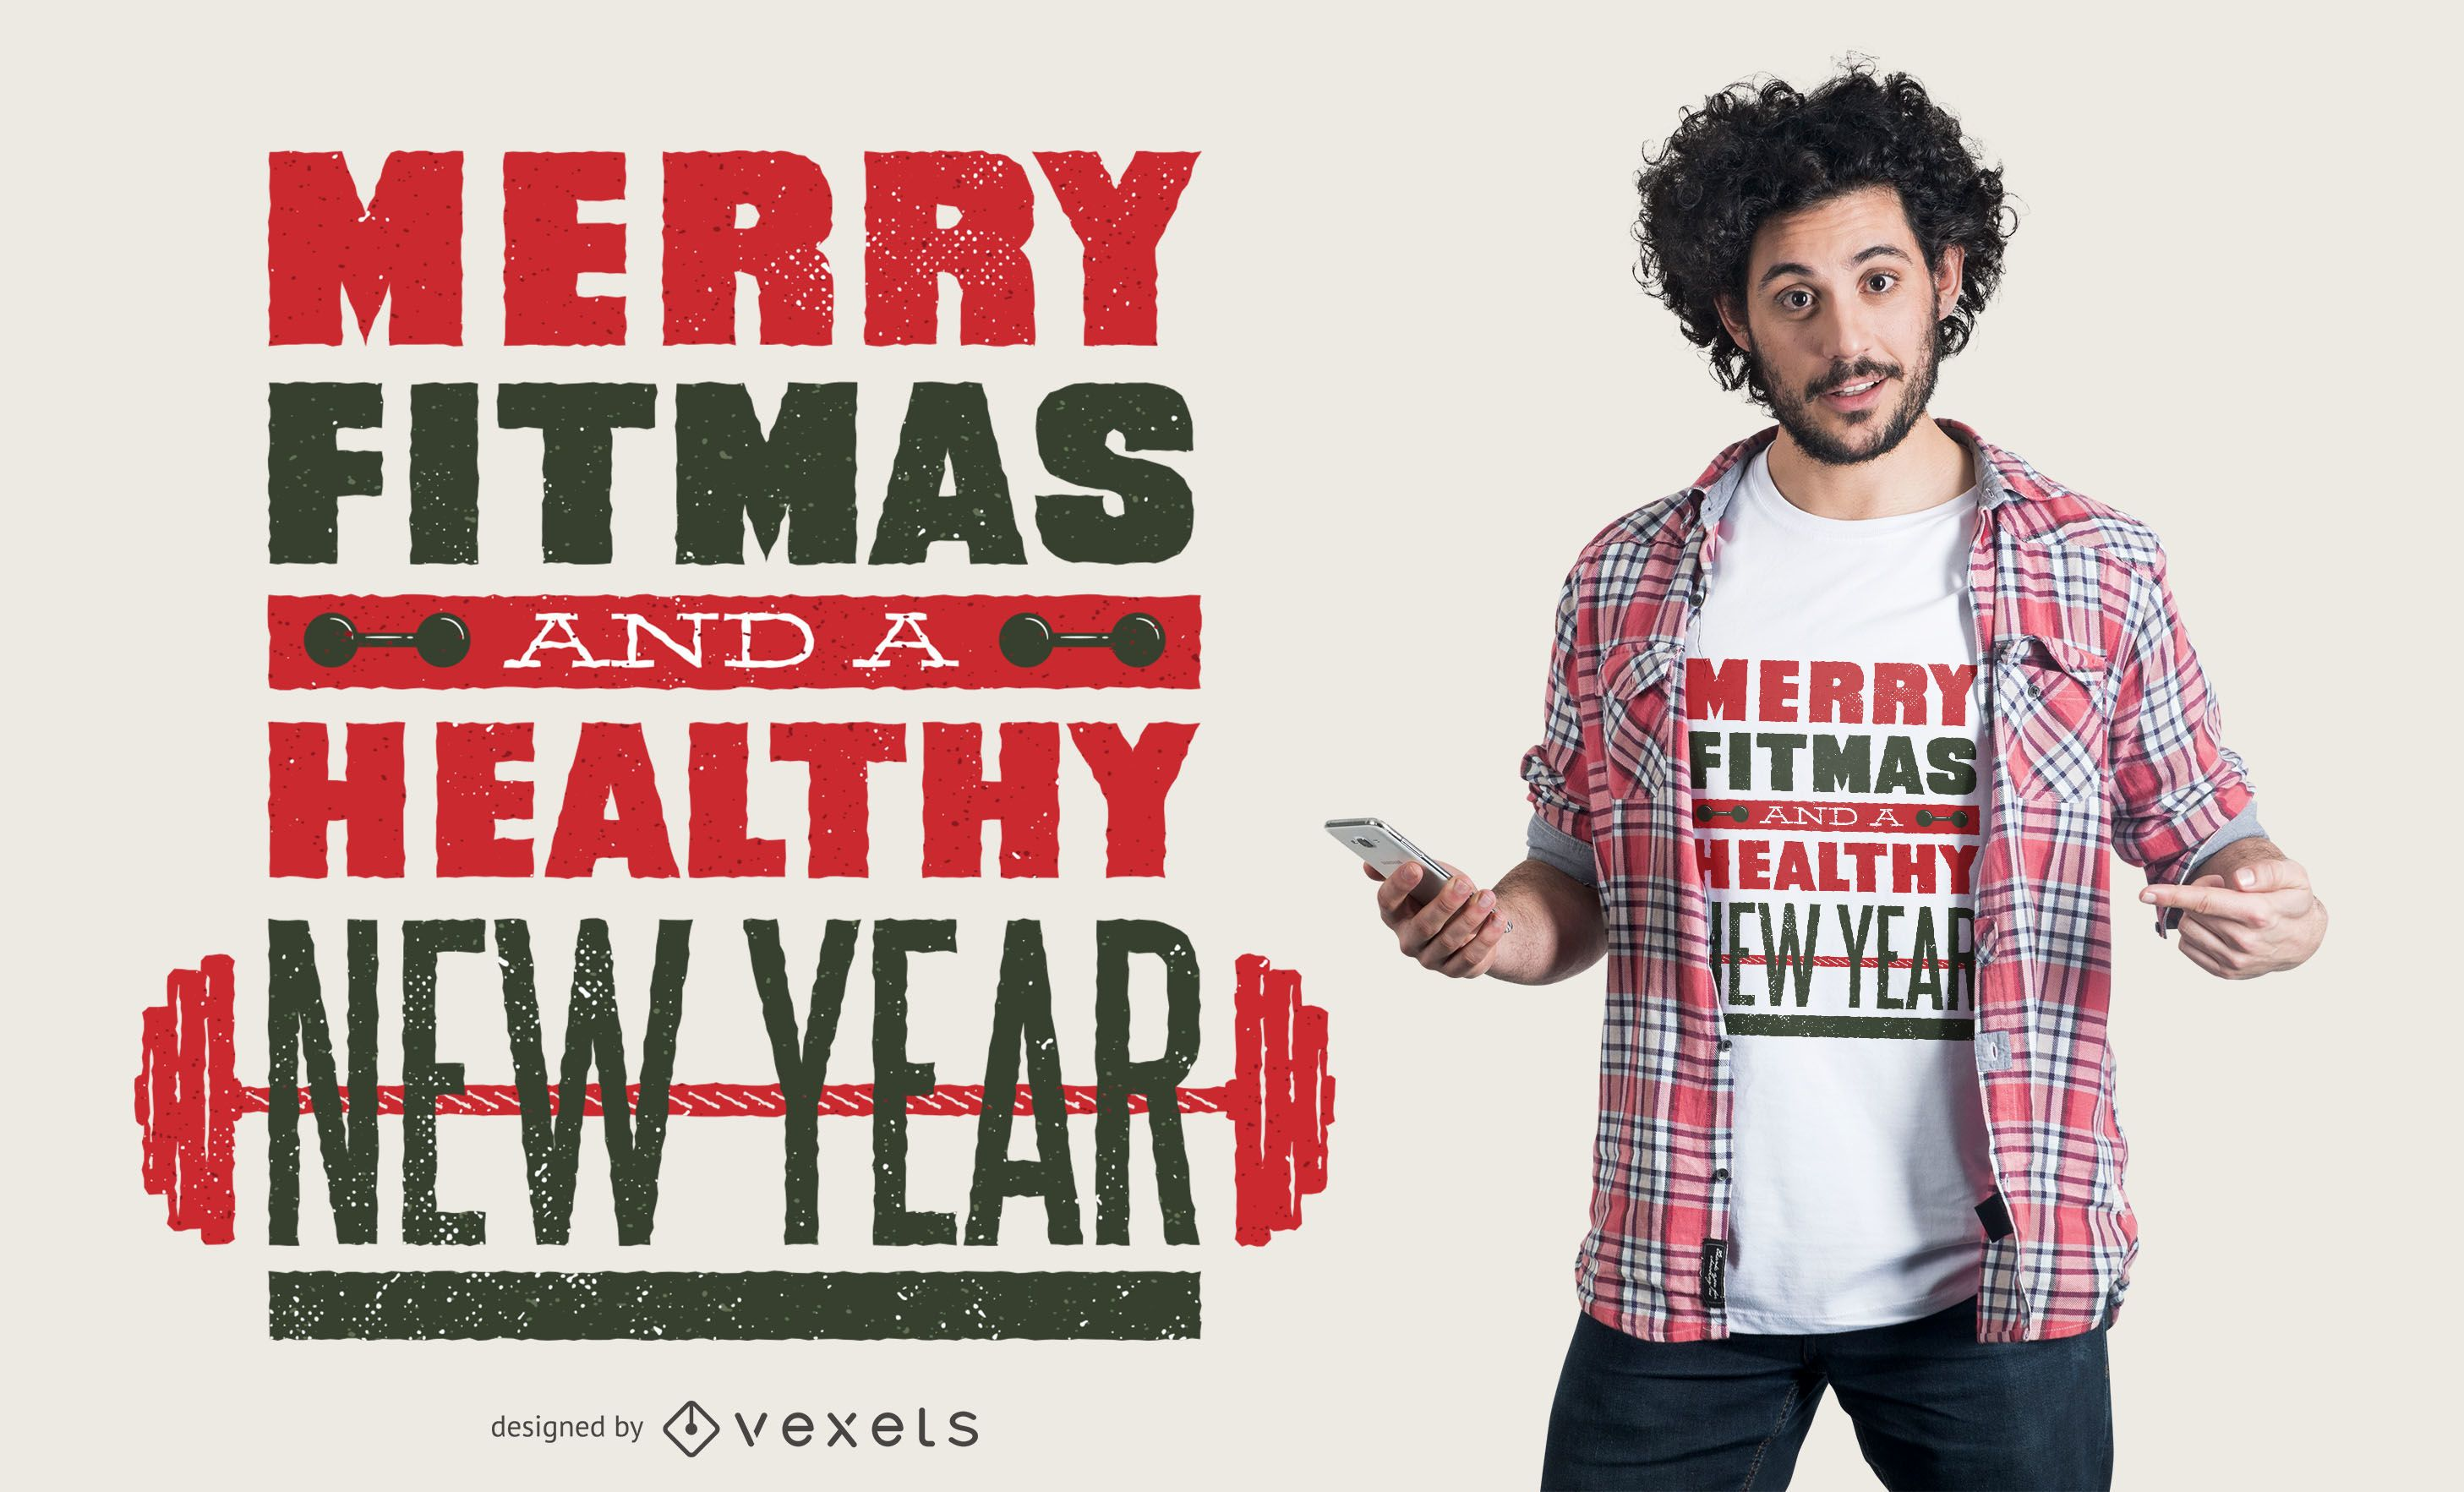 Merry fitmas quote t-shirt design